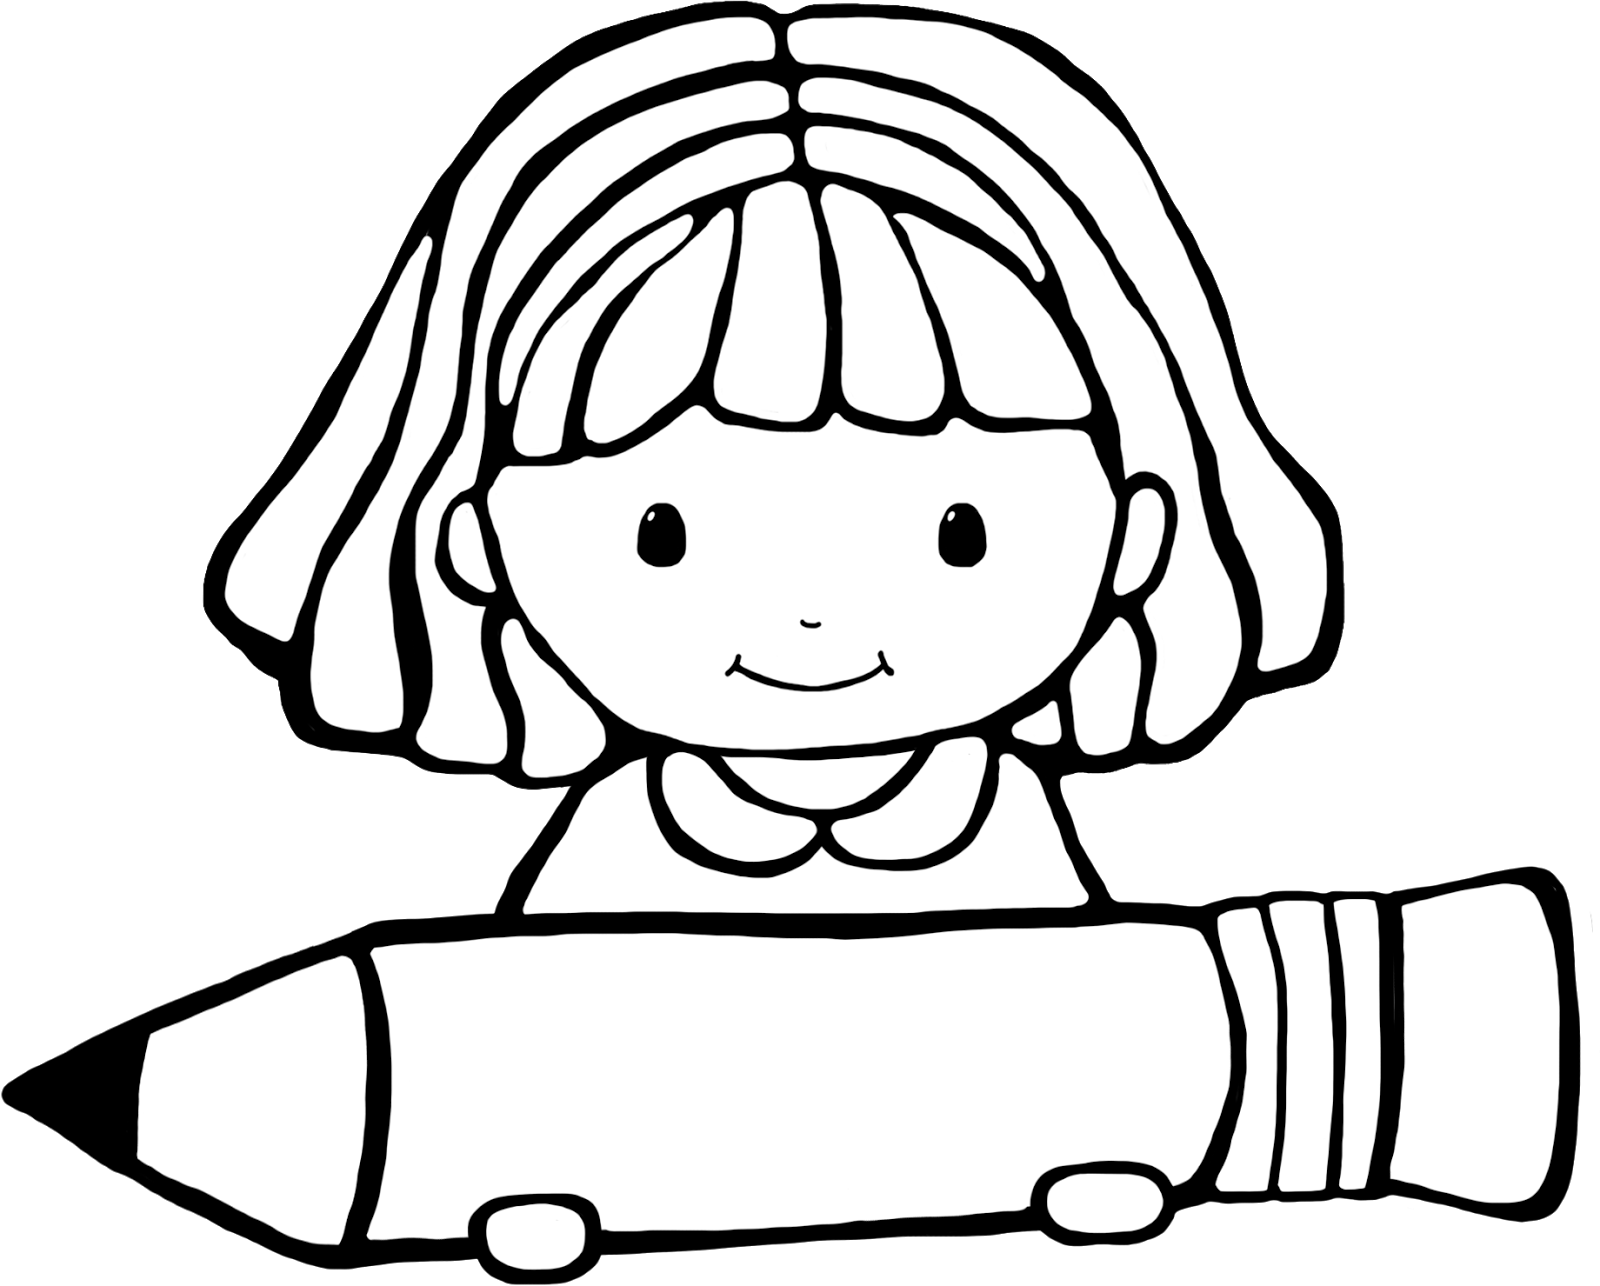 cute girl clipart black and whitw - Clipground